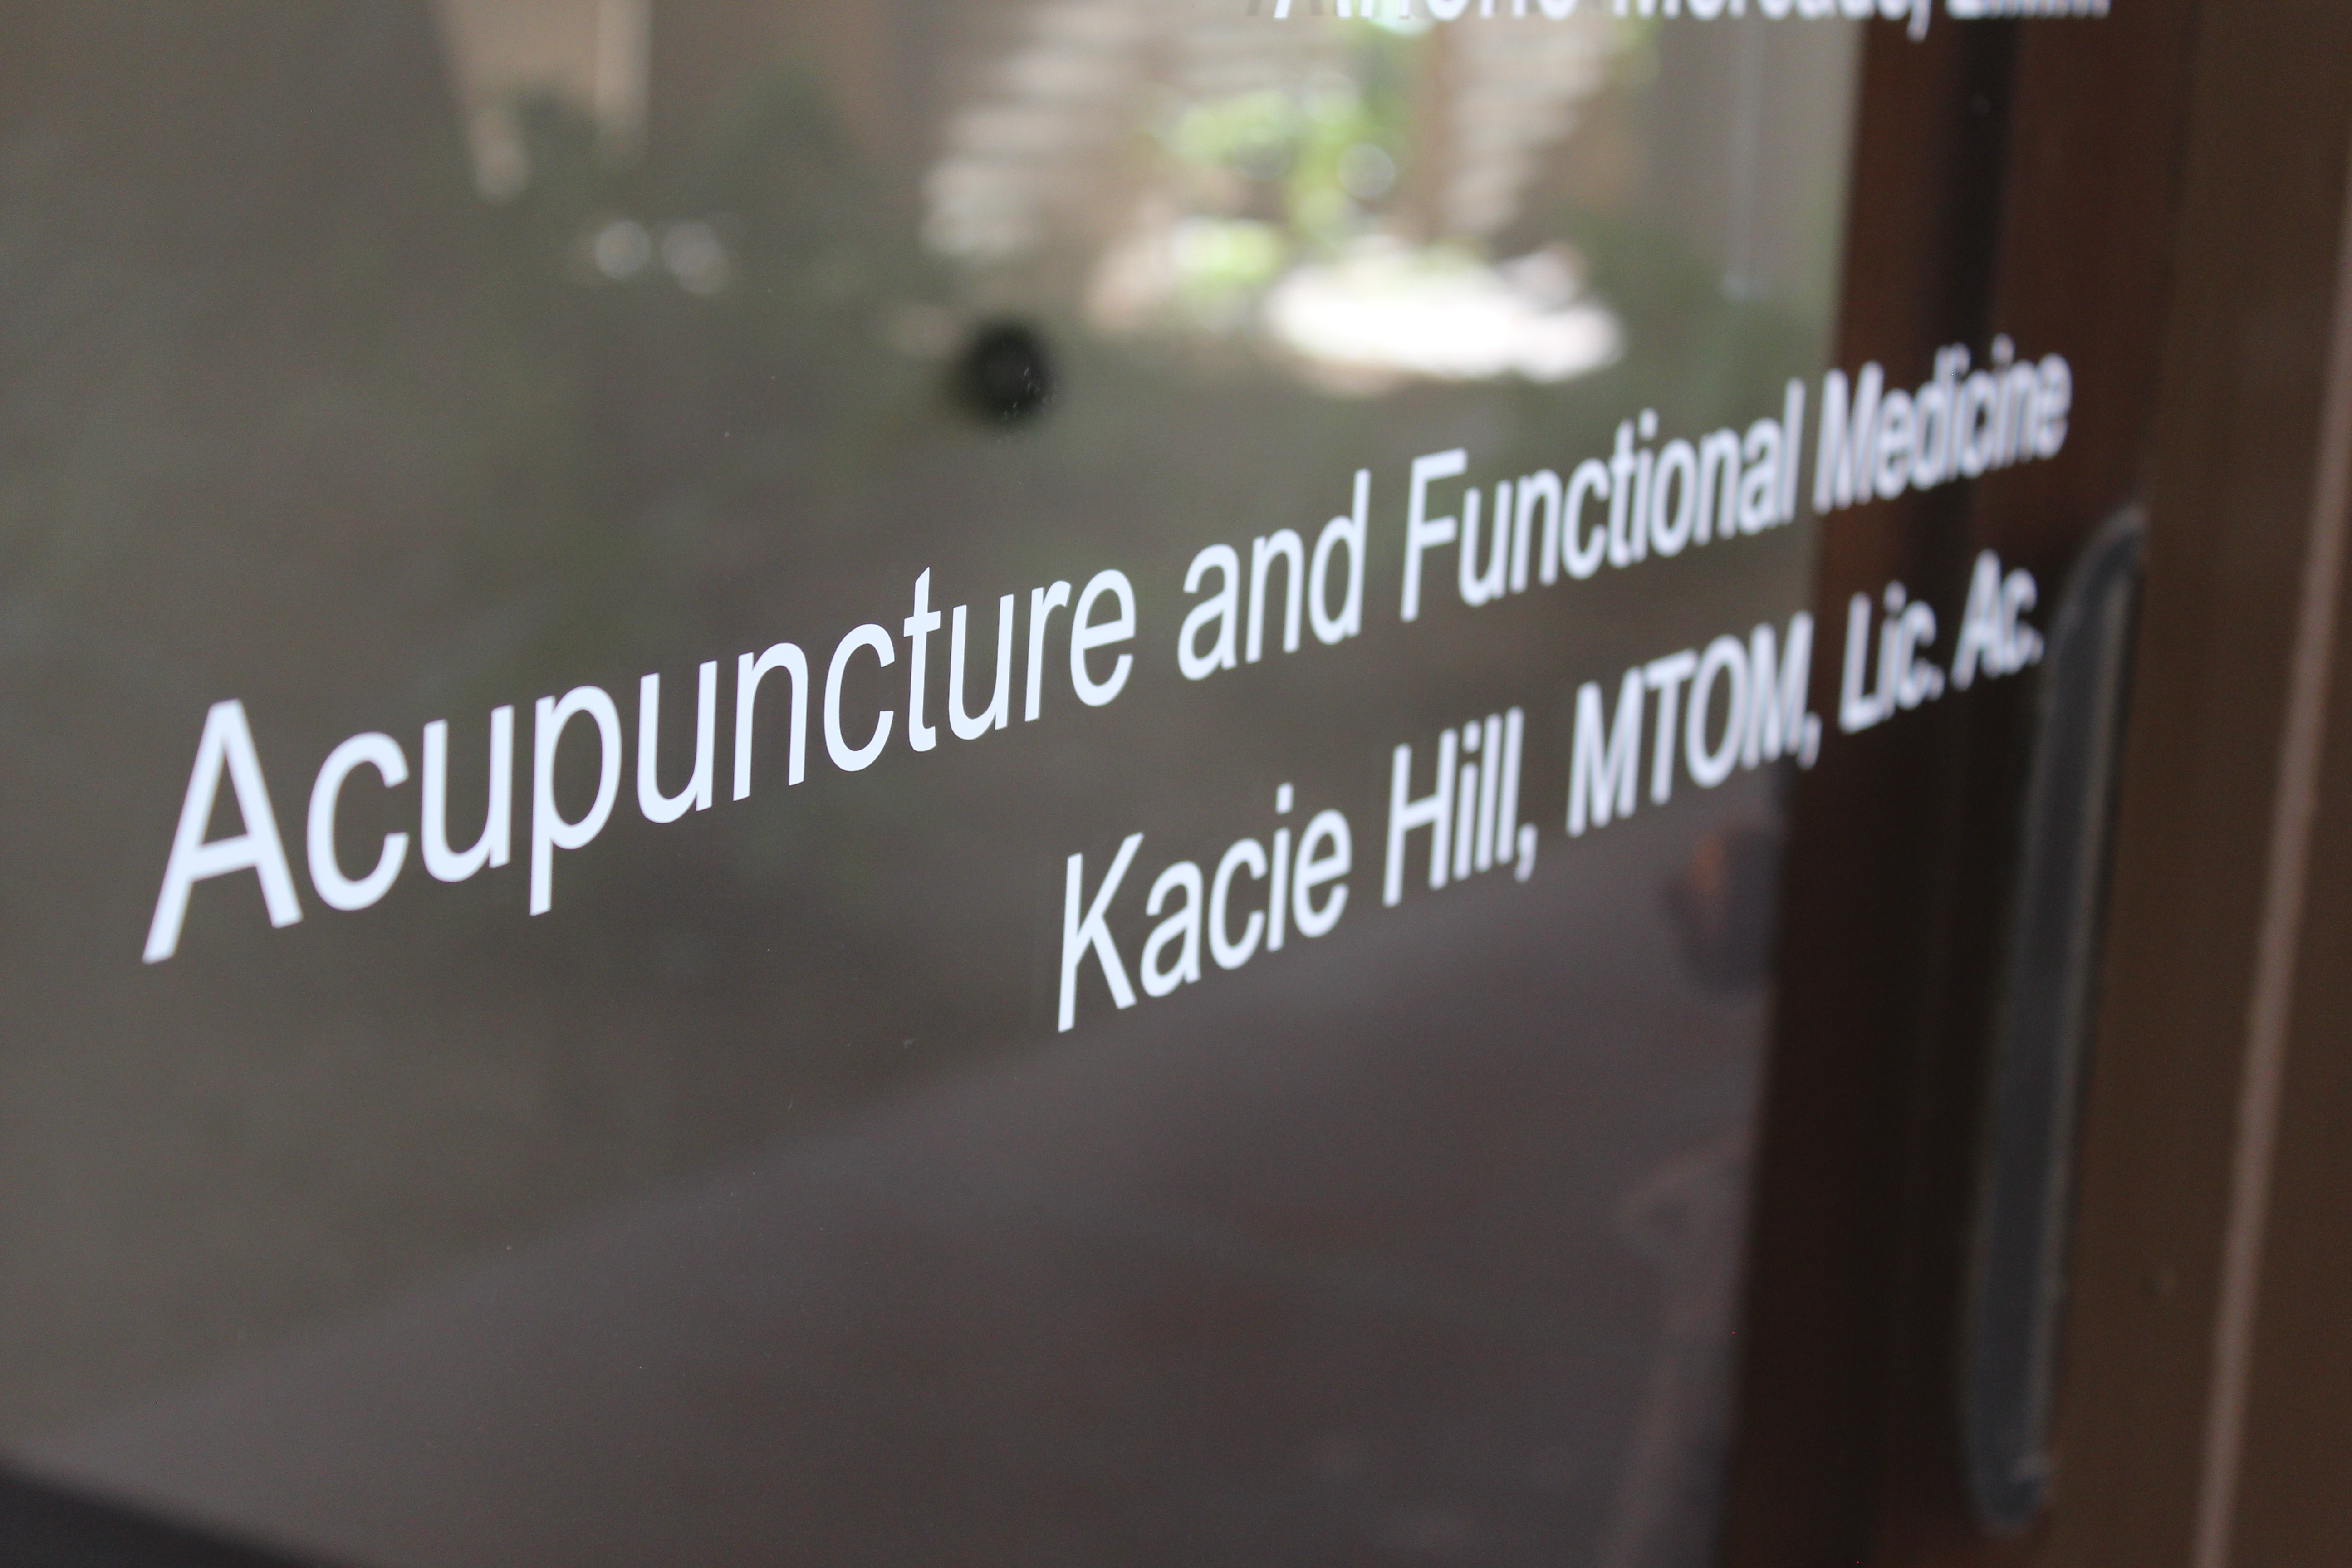 Acupuncture and Functional Medicine